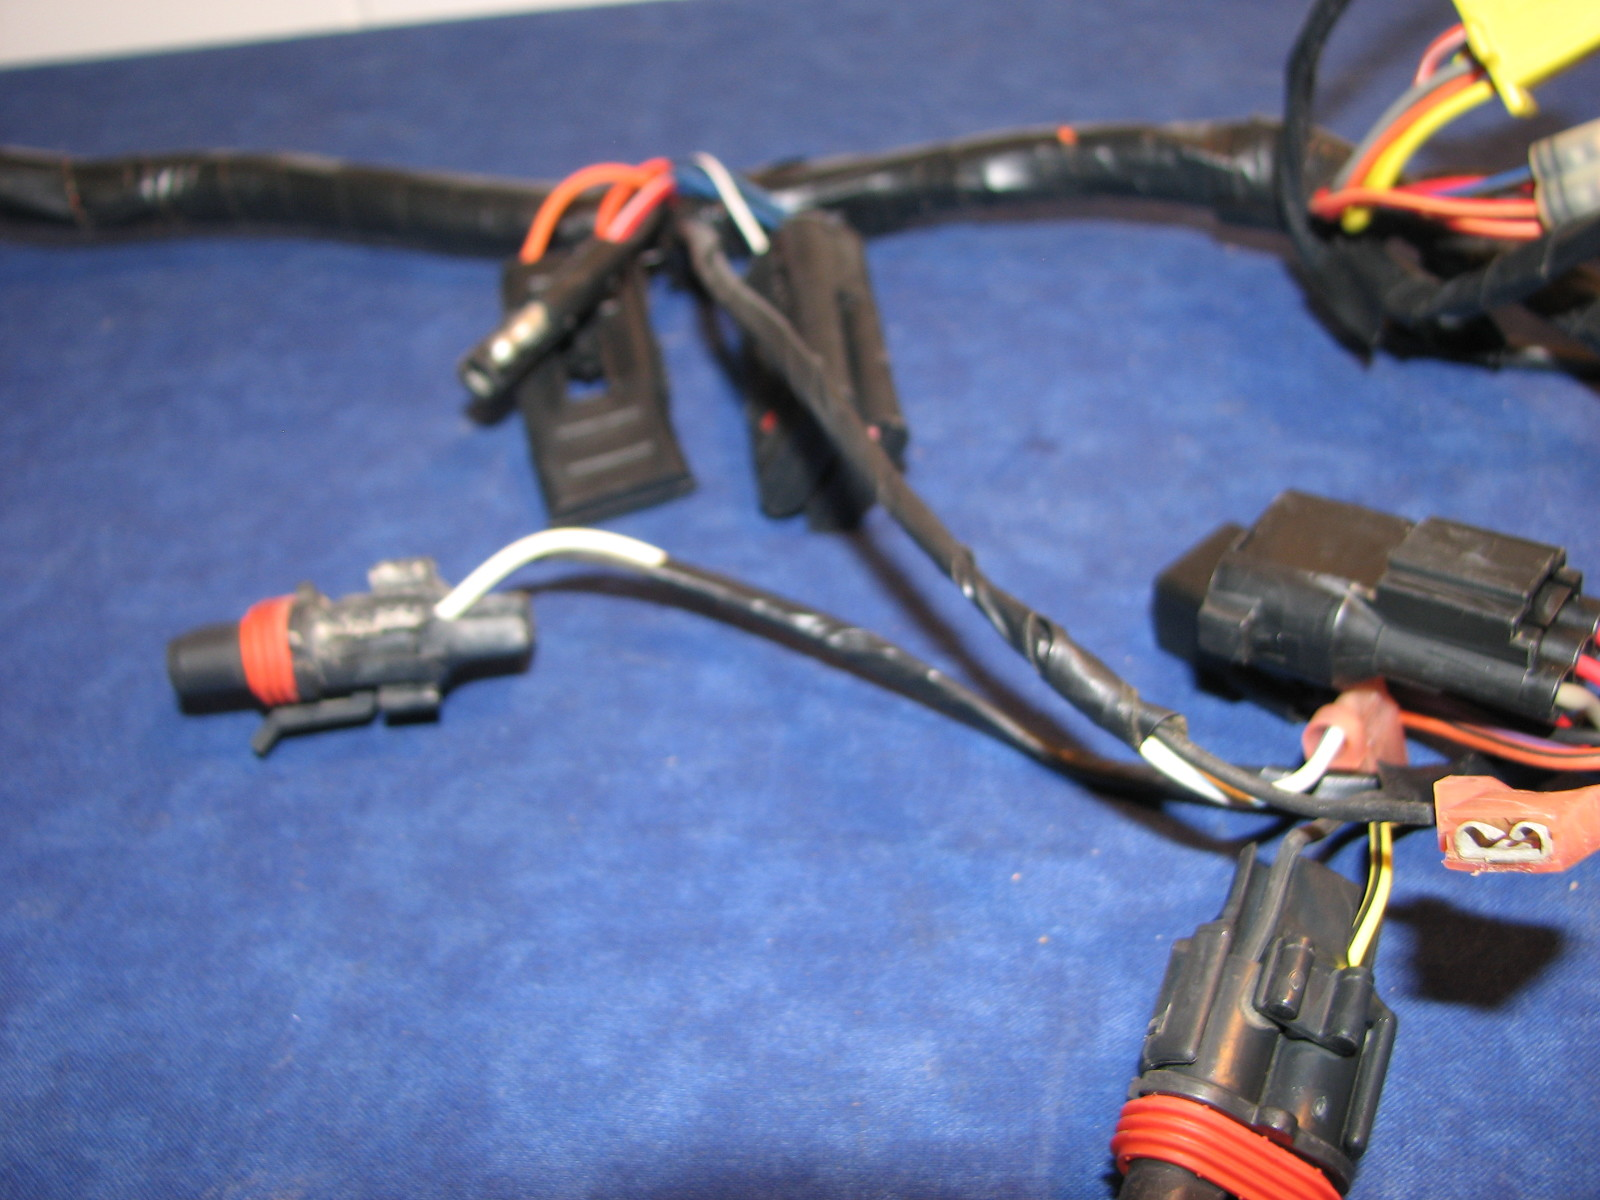 Arctic Cat Wiring Harness Opinions About Diagram 2005 400 4x4 Vp Auto 0486 165 Ebay 300